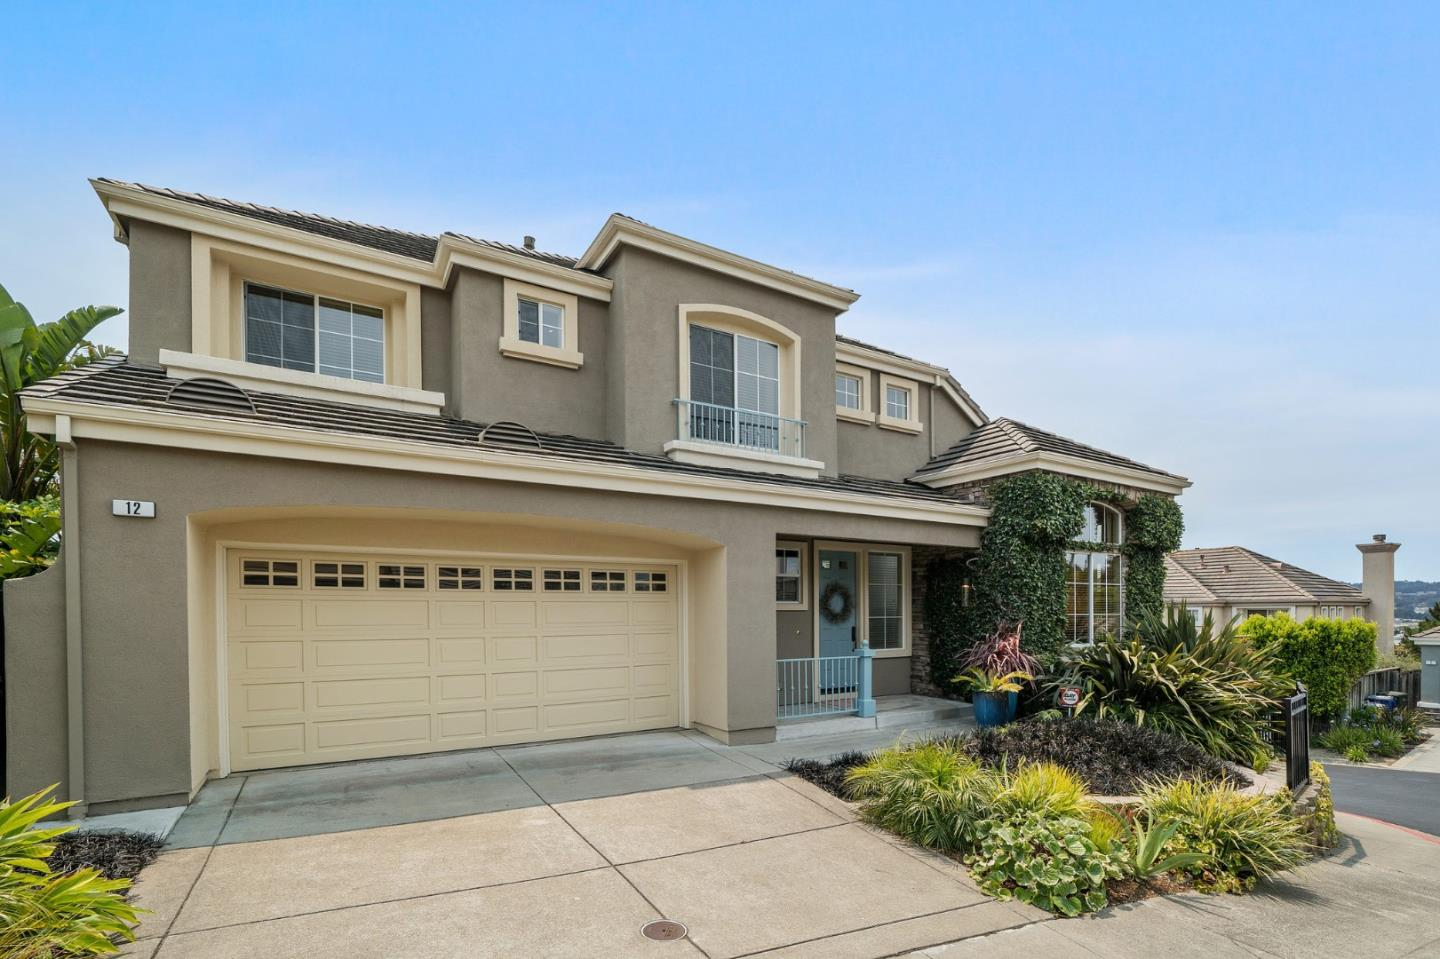 Detail Gallery Image 1 of 1 For 12 Joseph Dr, South San Francisco,  CA 94080 - 3 Beds   3 Baths